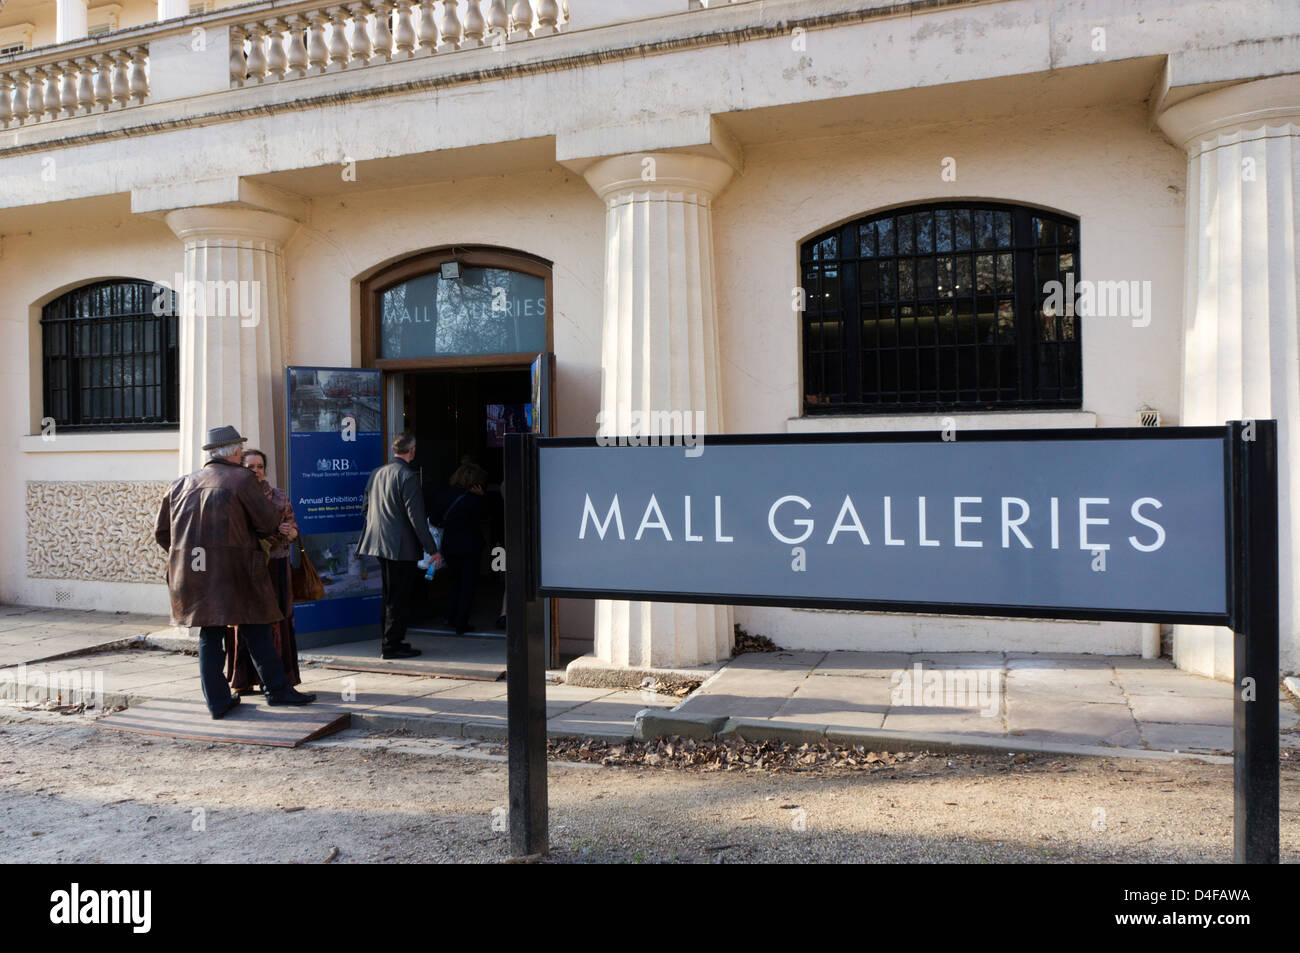 Sign outside the Mall Galleries, London. - Stock Image